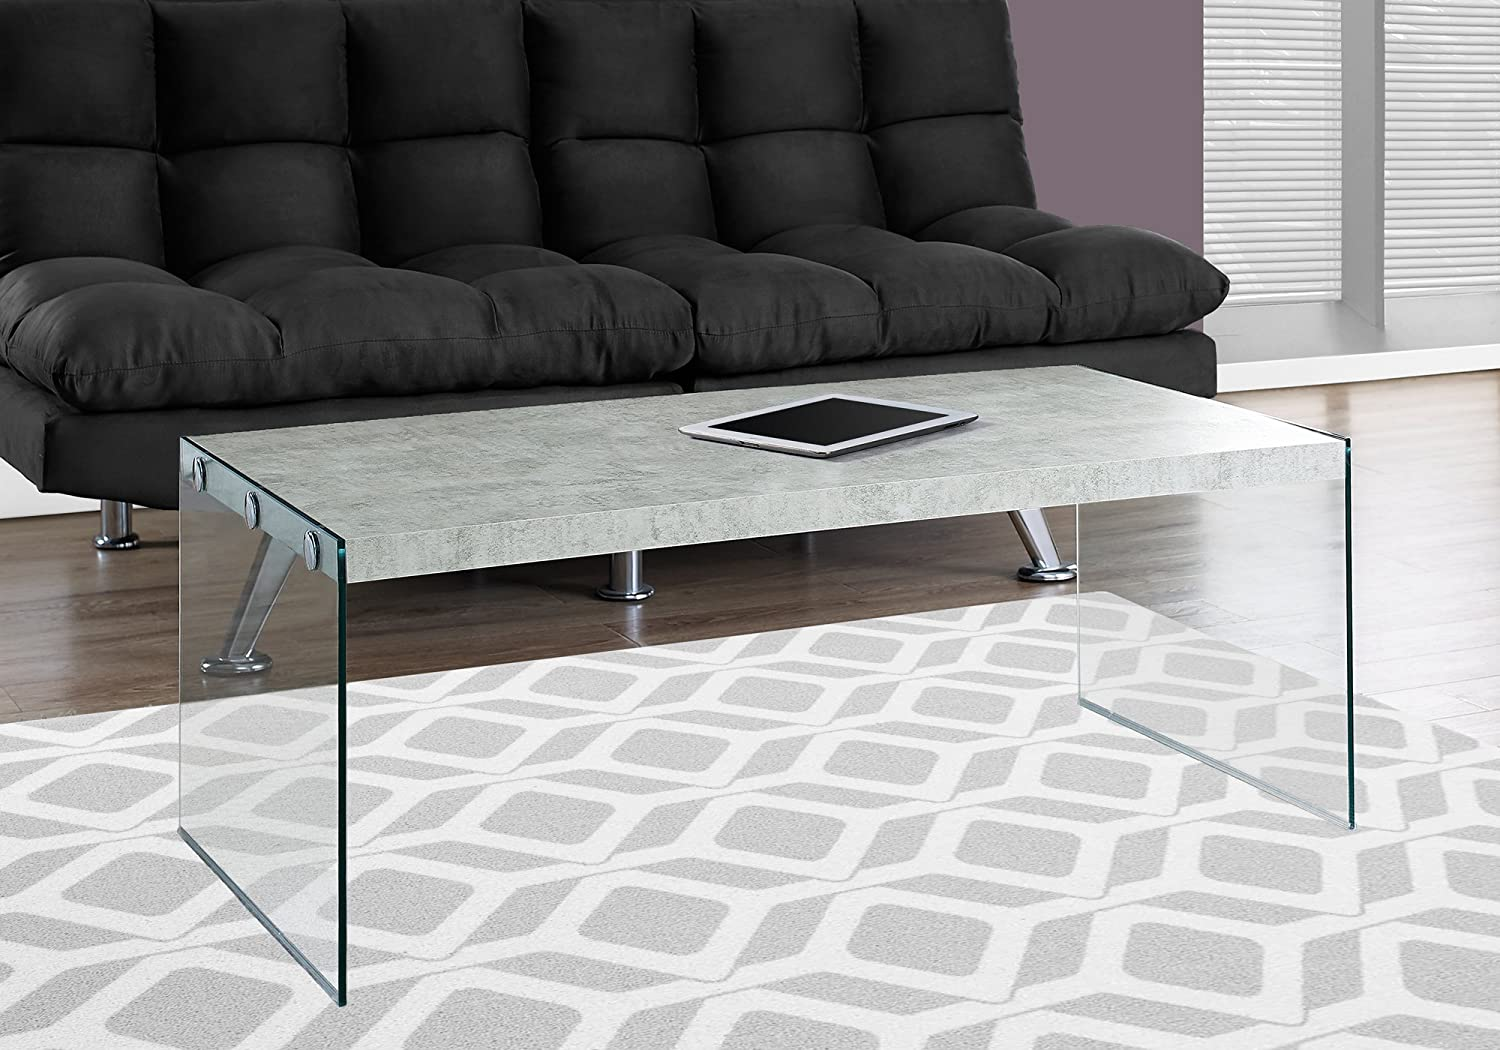 Amazon Monarch specialties I 3230 Coffee Table Tempered